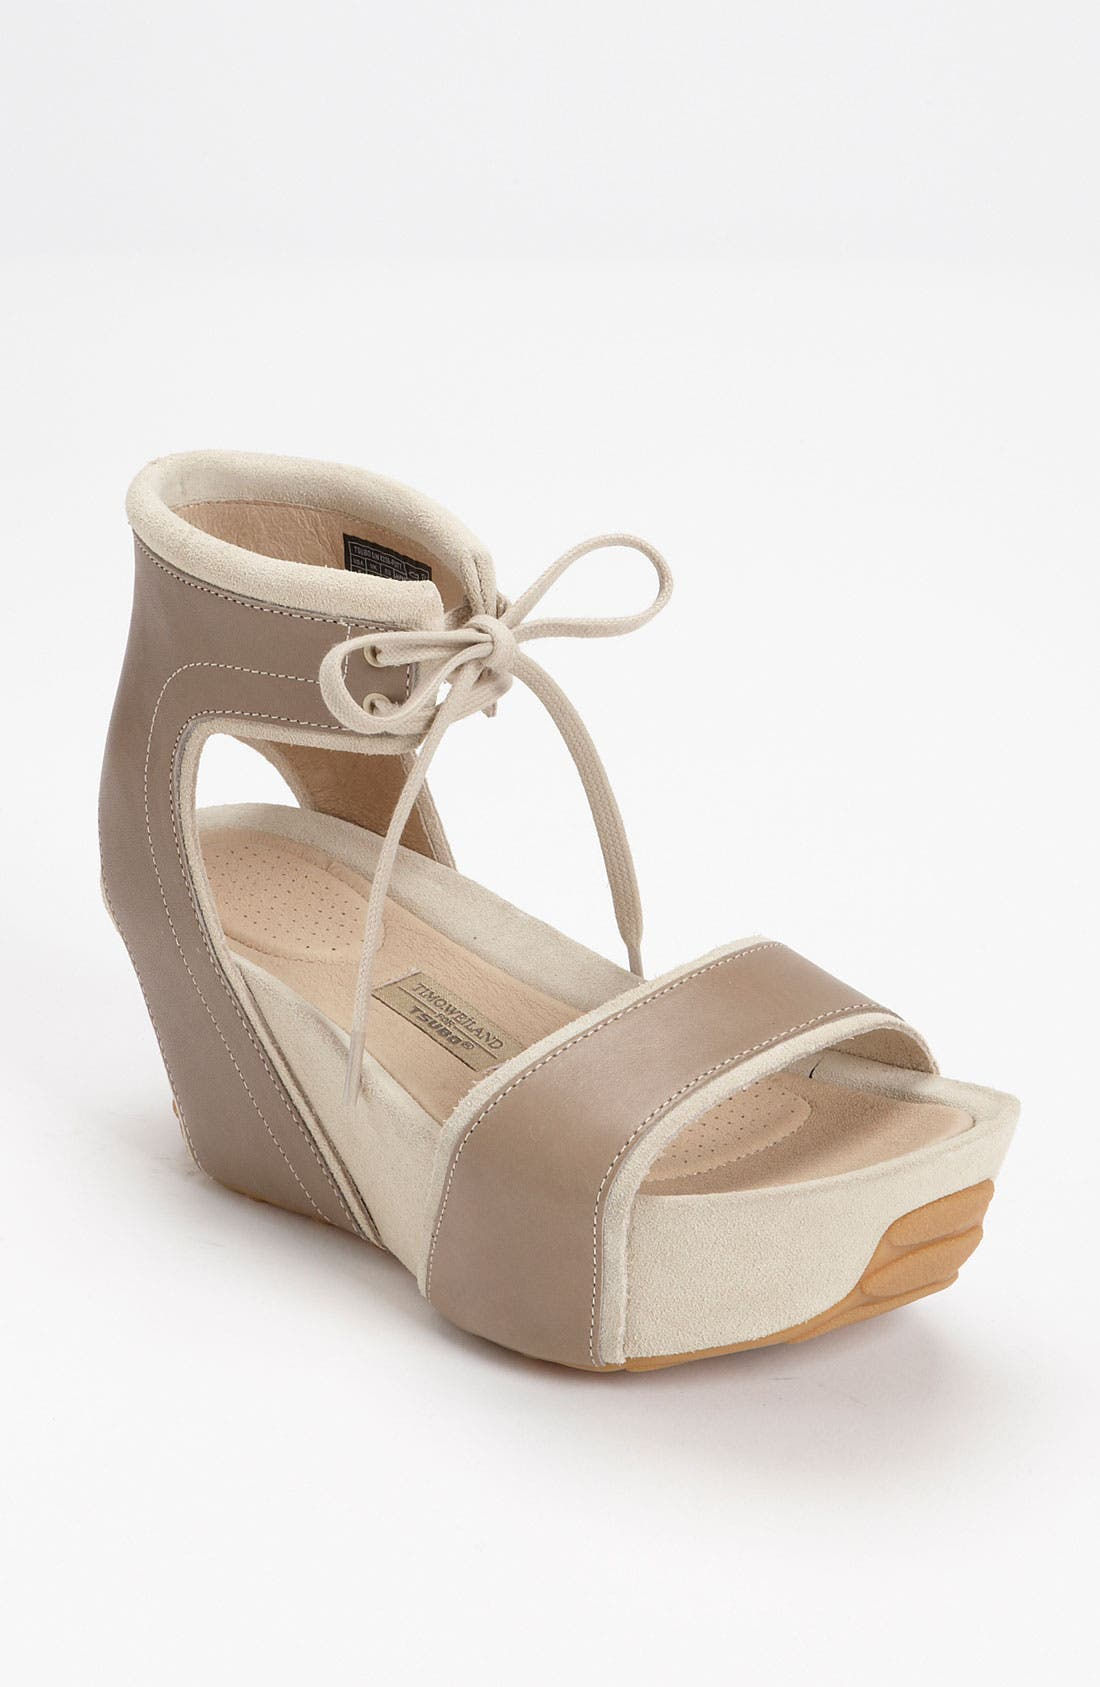 Alternate Image 1 Selected - Timo Weiland for Tsubo 'Sedna' Wedge